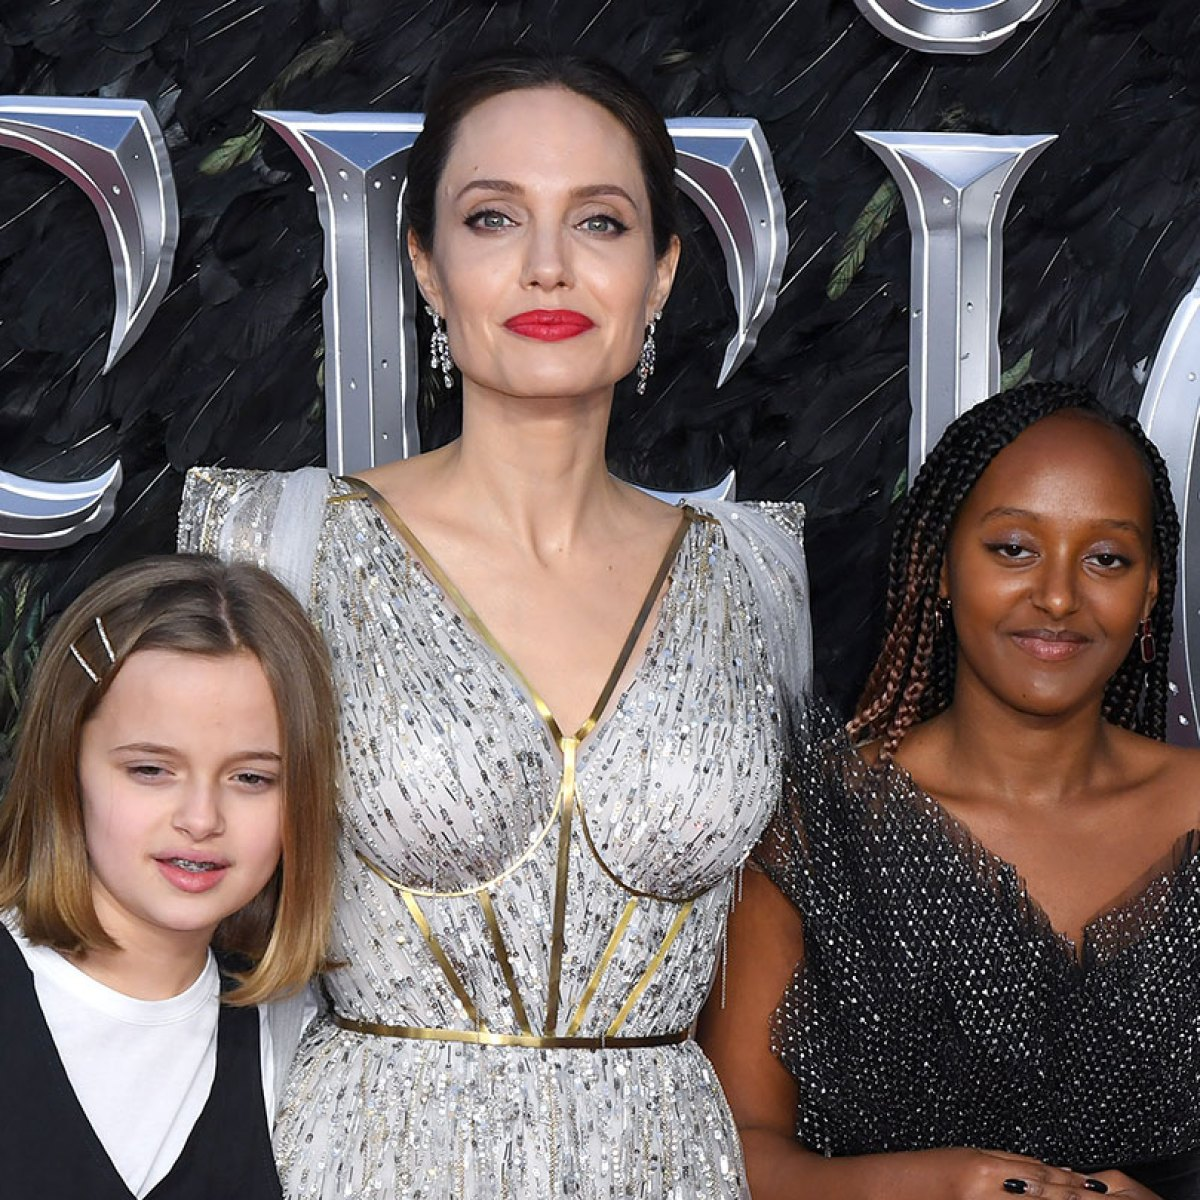 Angelina Jolie Goes To London Maleficent Premiere With Her